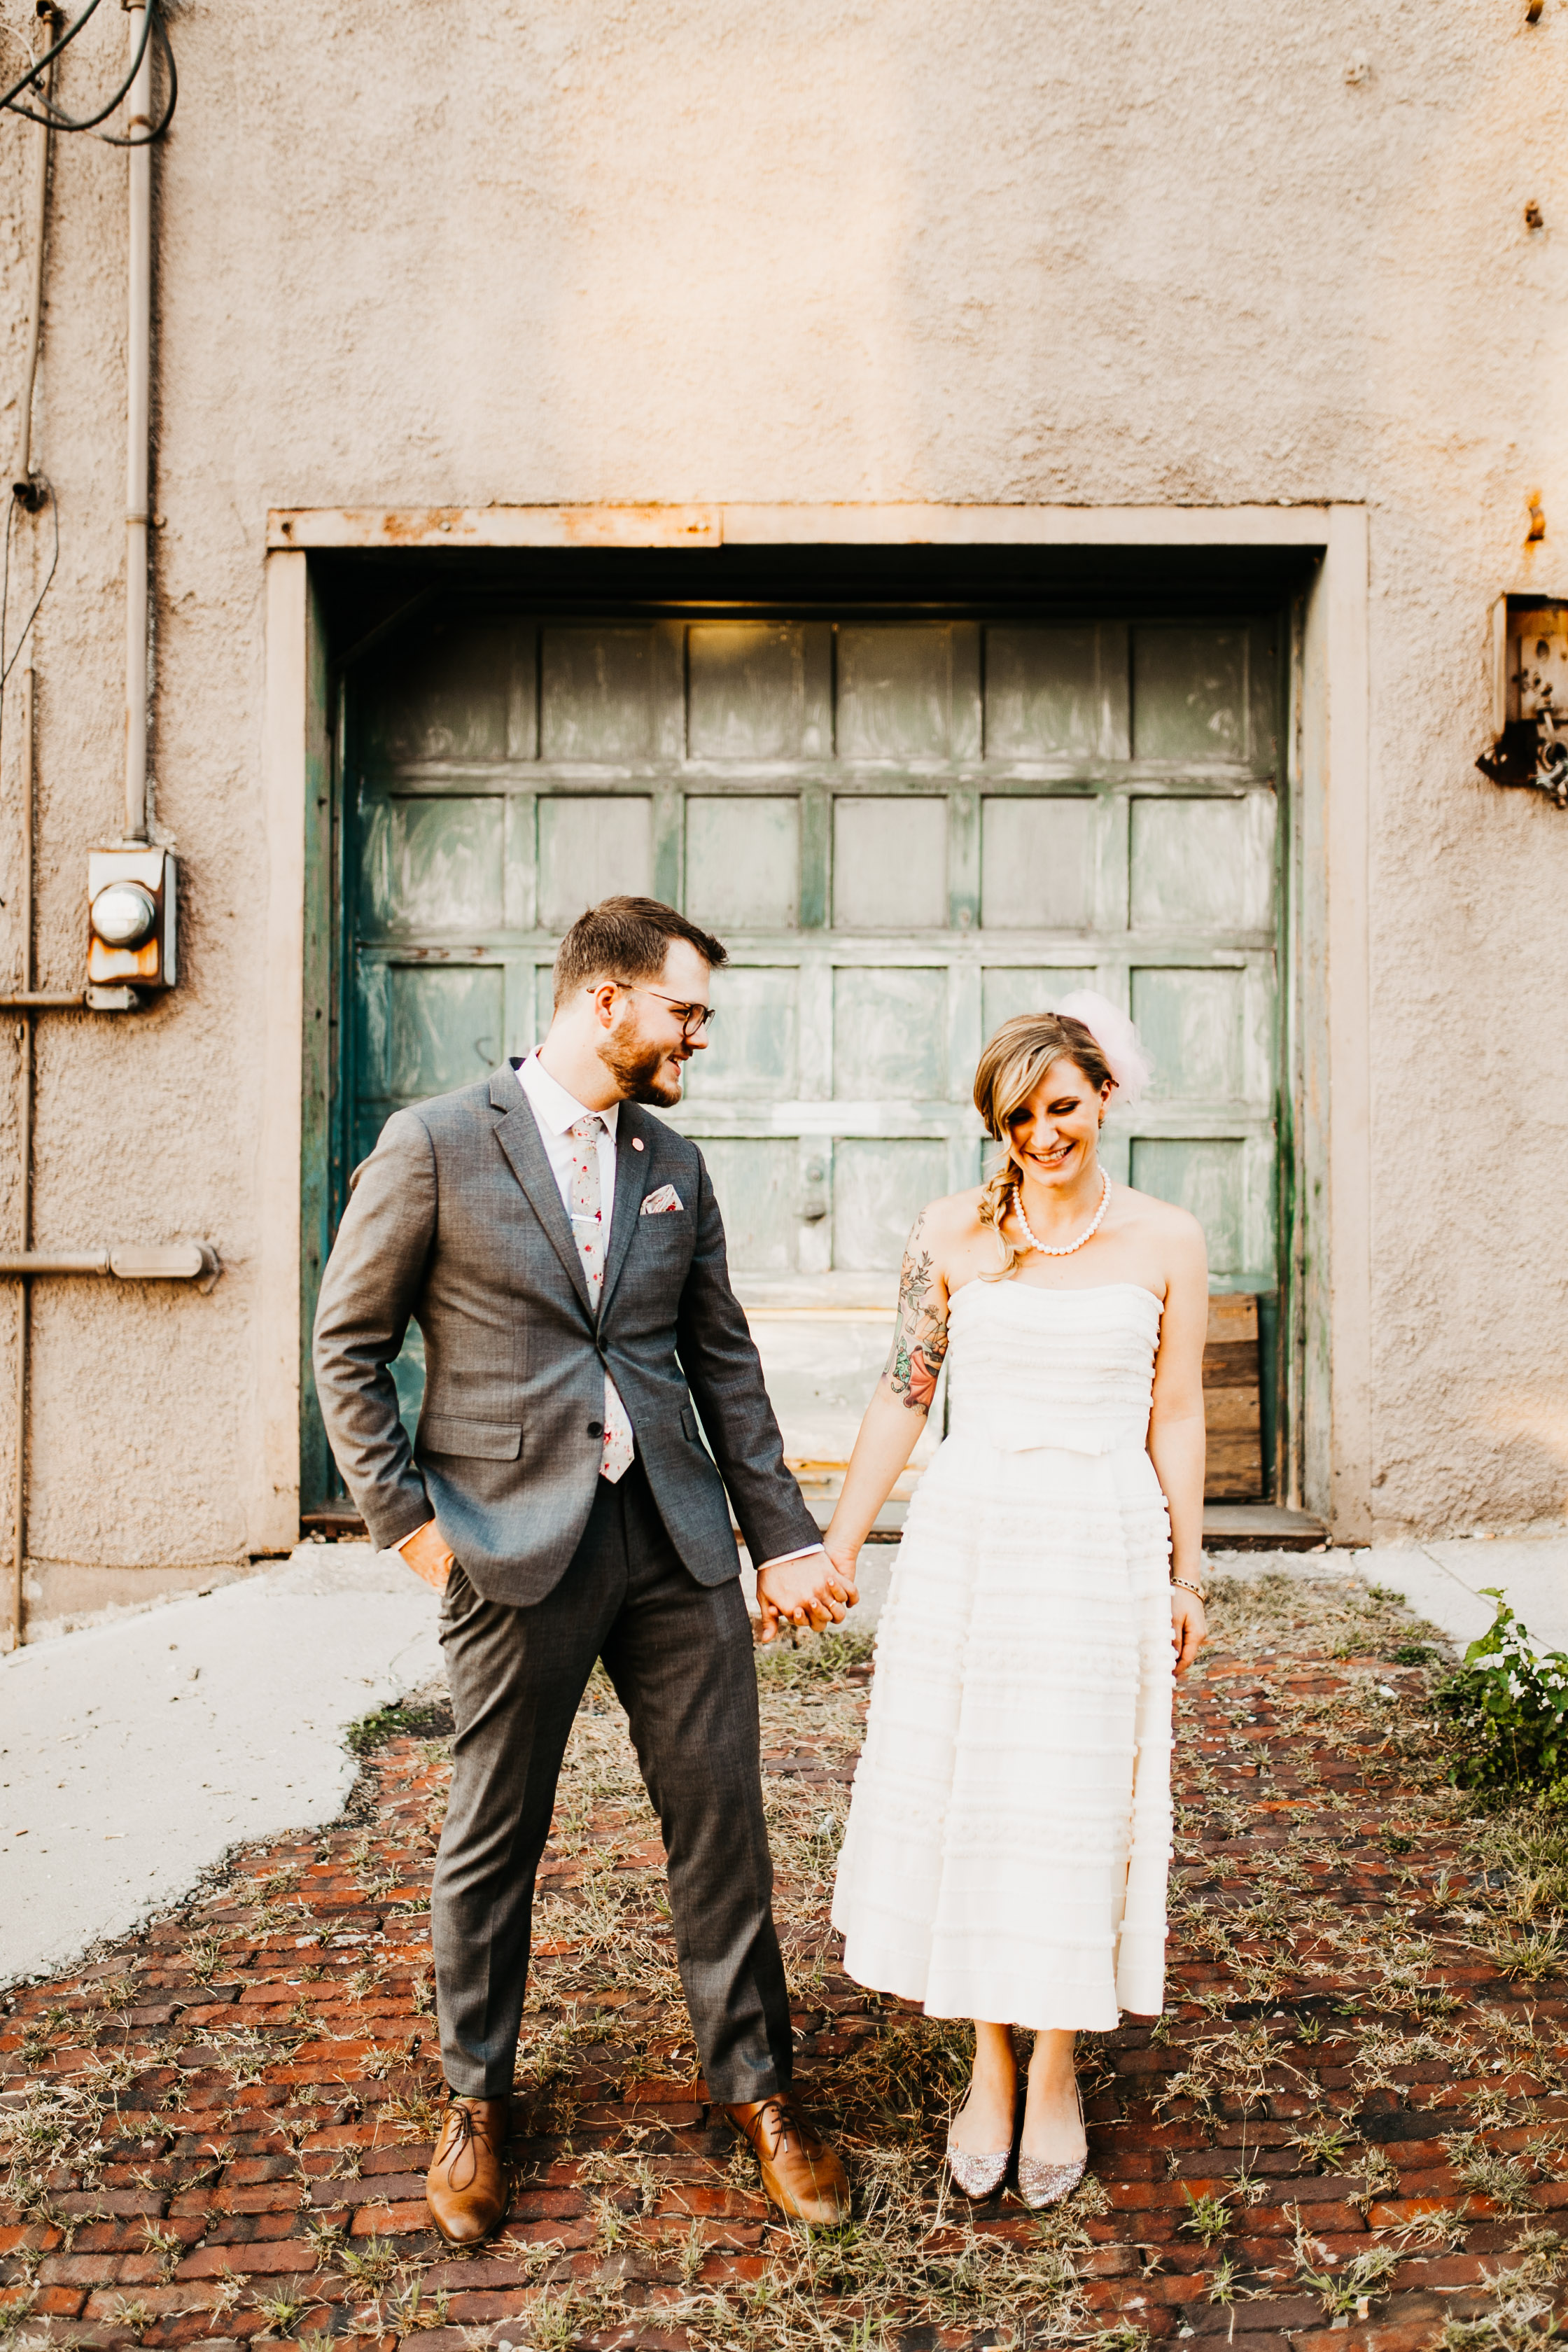 uprooted-traveler-how-to-have-a-vegan-wedding-men's-suits.jpg